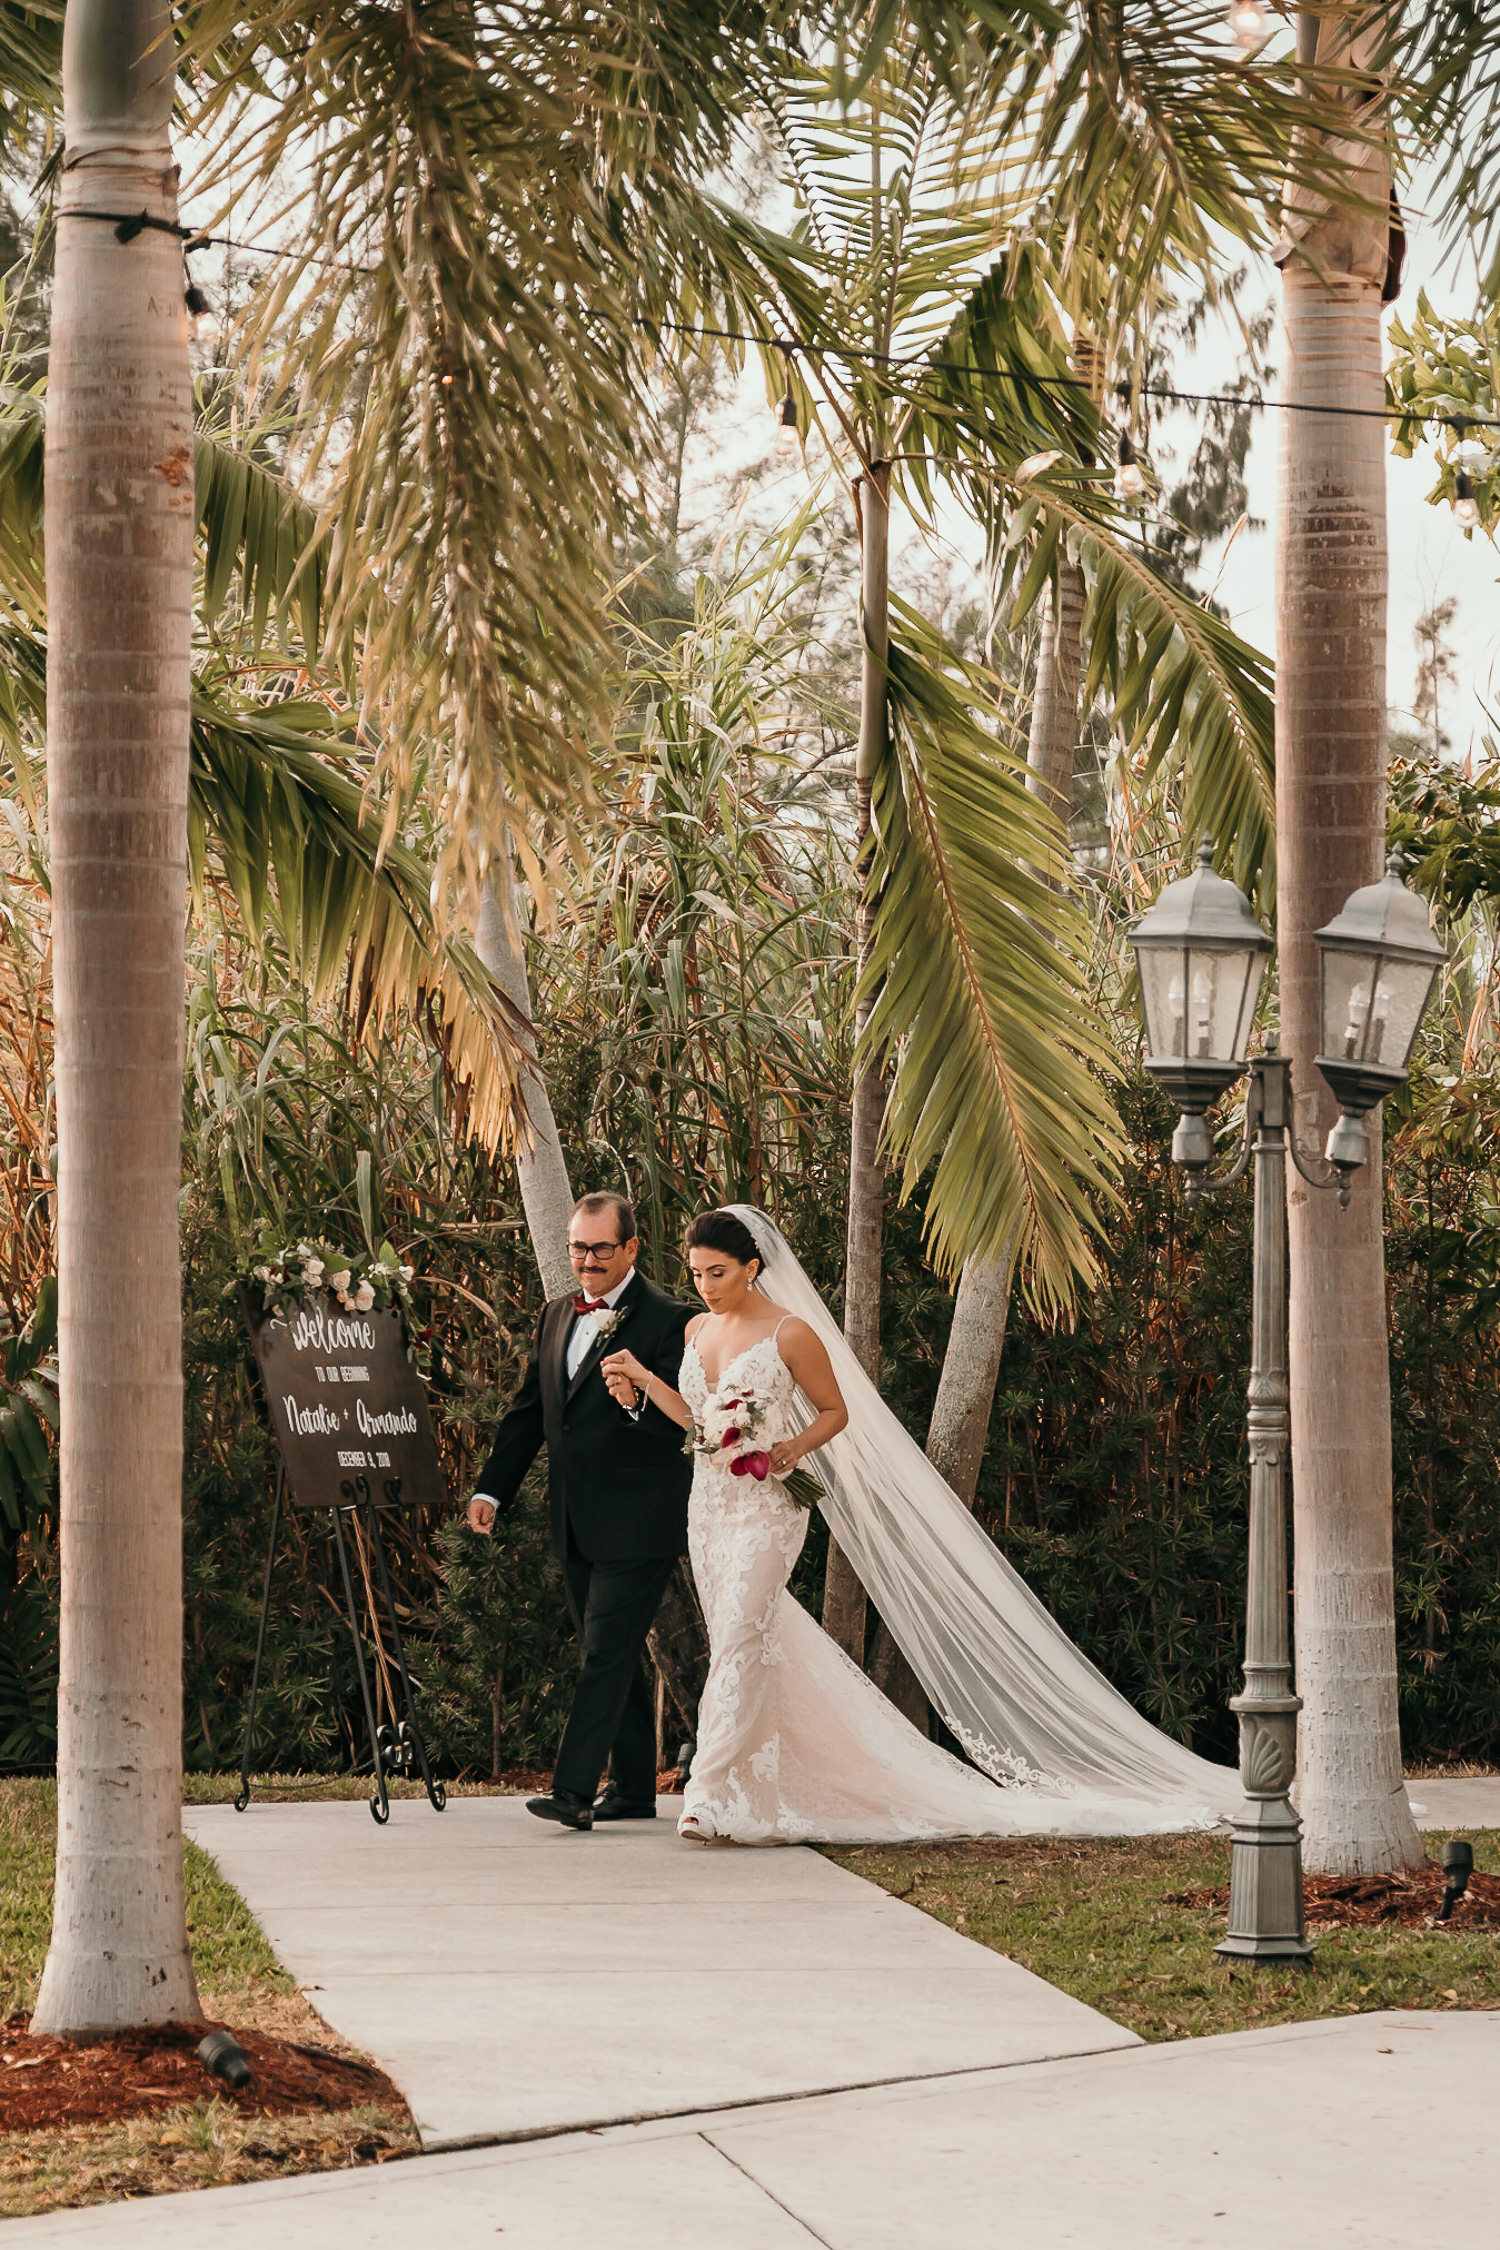 bride and father walking towards ceremony area under palm trees